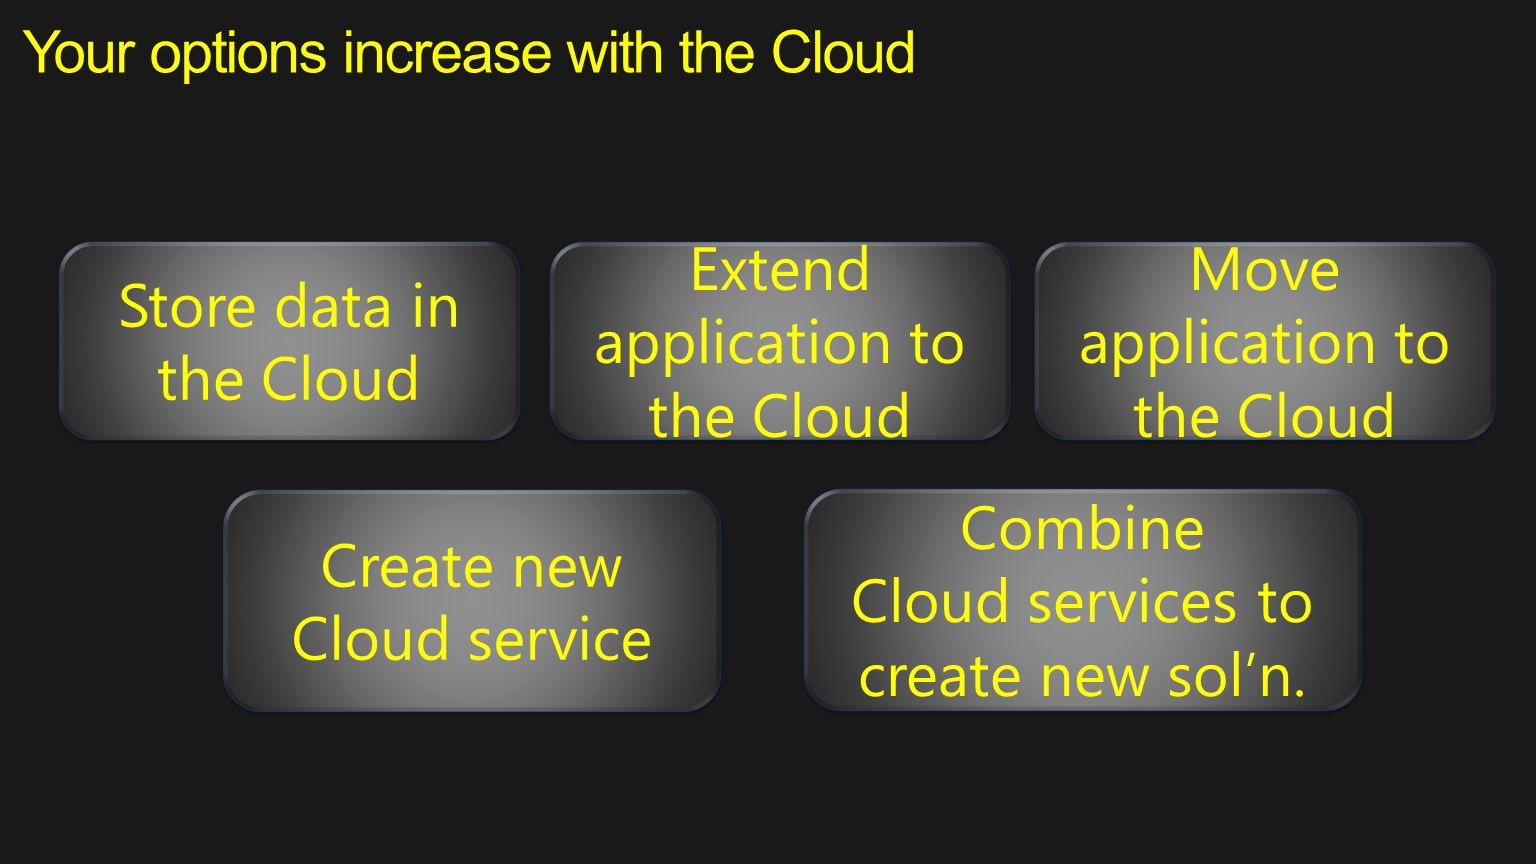 Your options increase with the Cloud